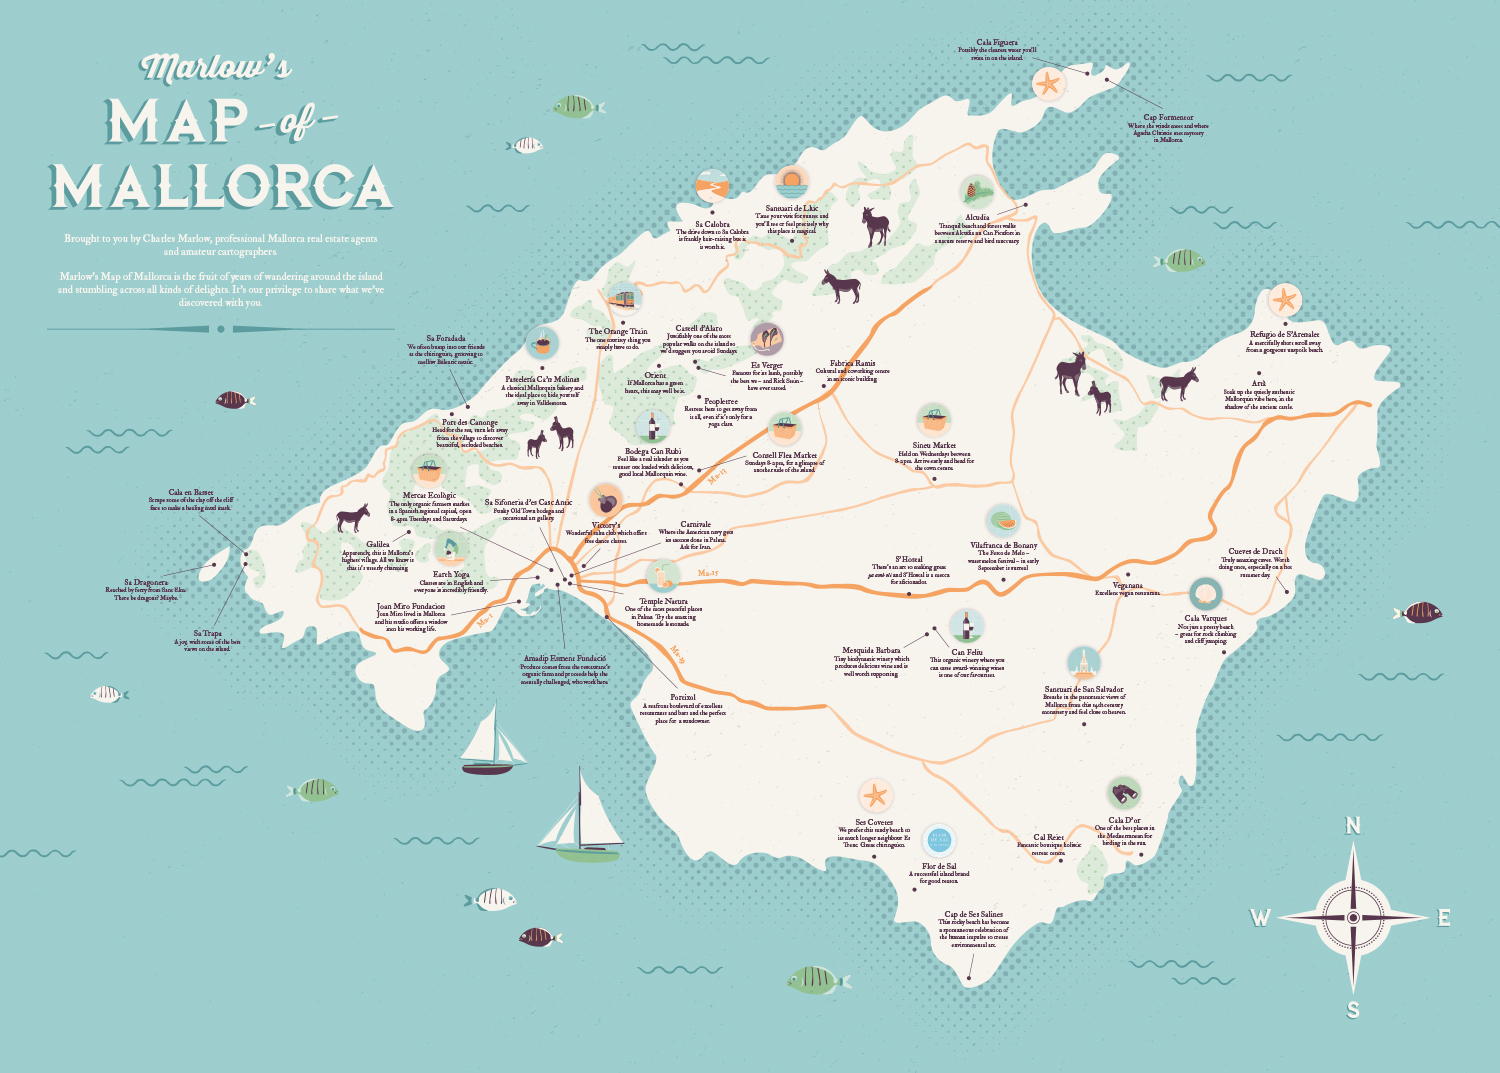 Marlow\'s Marvellous Map of Mallorca – the story - Charles Marlow